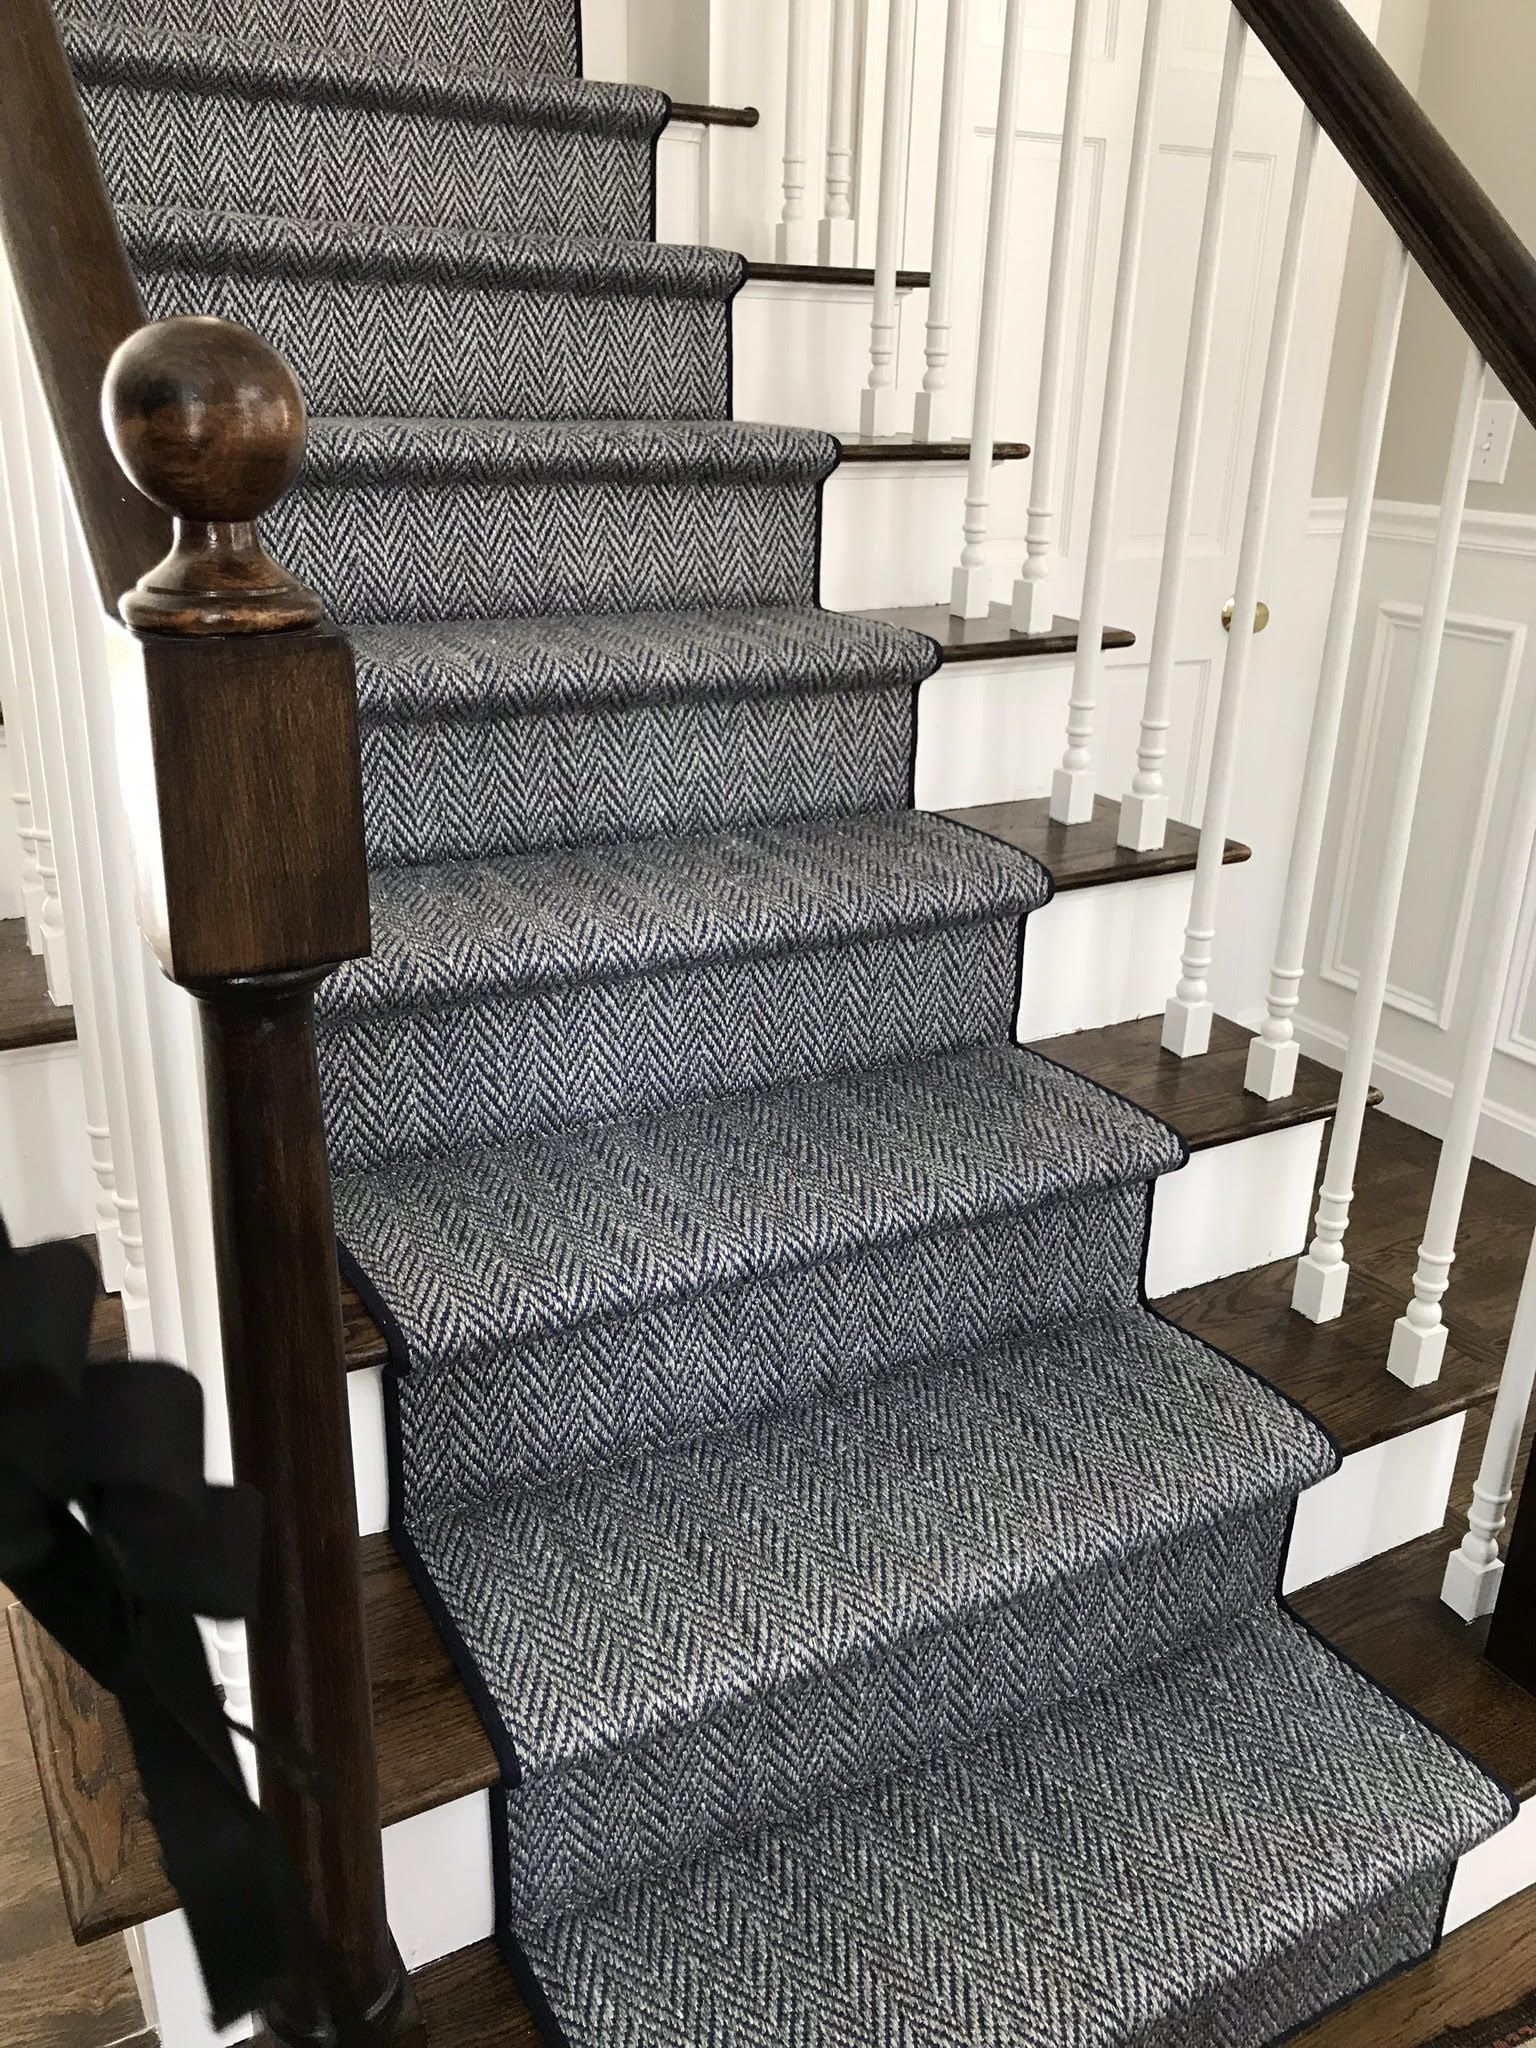 Another Install For A Hollywood Herringbone Stair Runner For A   Carpet Tiles For Stairs Home Depot   Stair Runner   Eurotile   Stainless Steel   Stair Tread   Beige Carpet